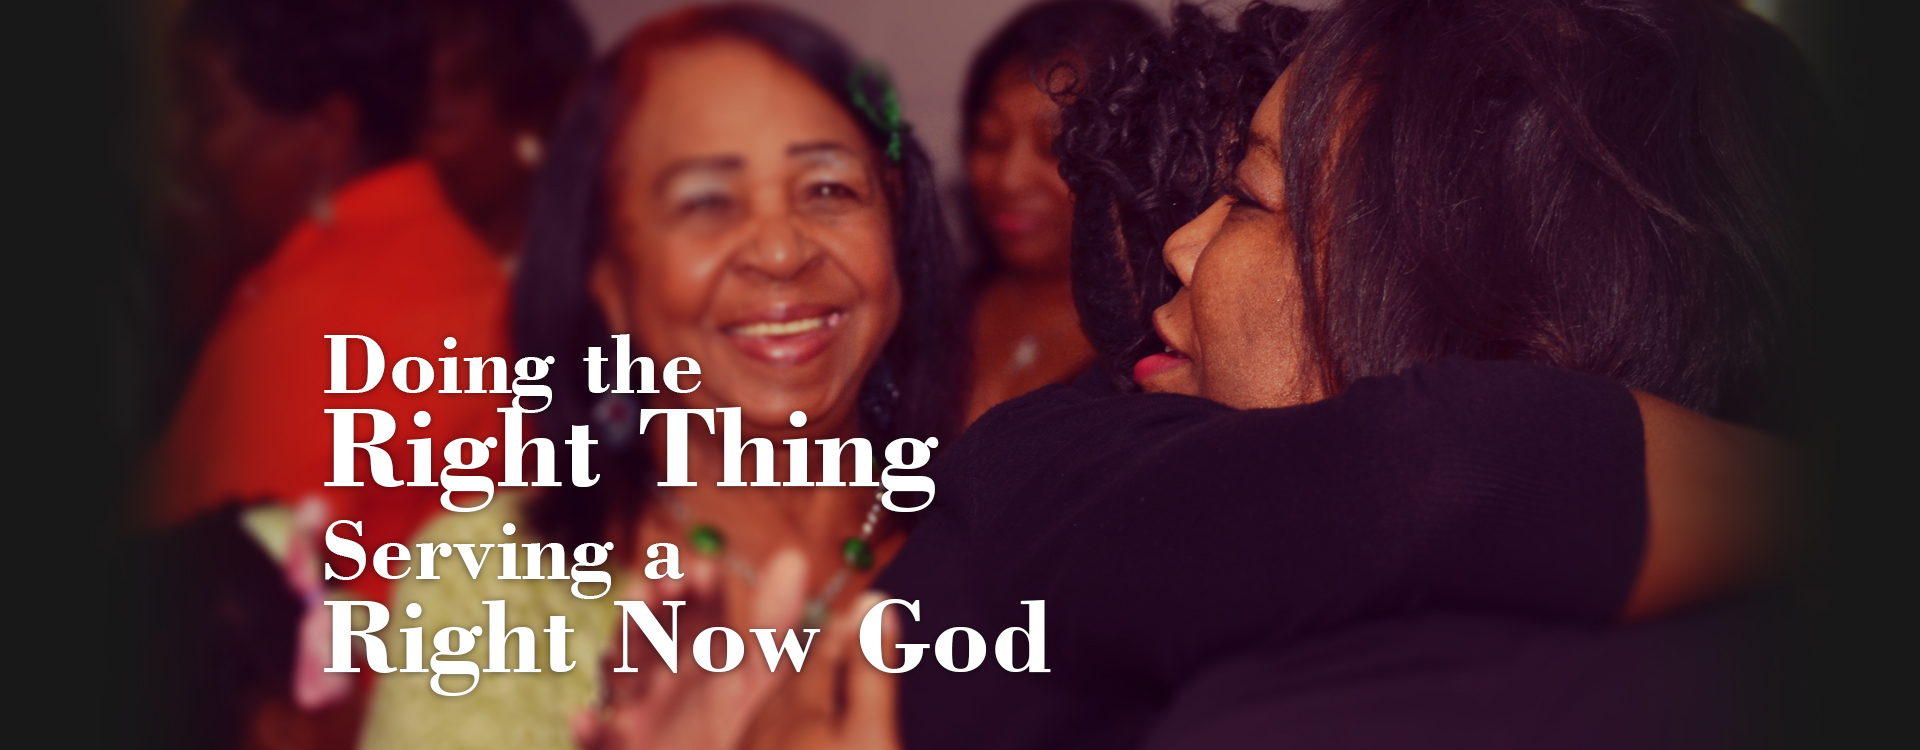 doing-the-right-thing-serving-a-right-now-god